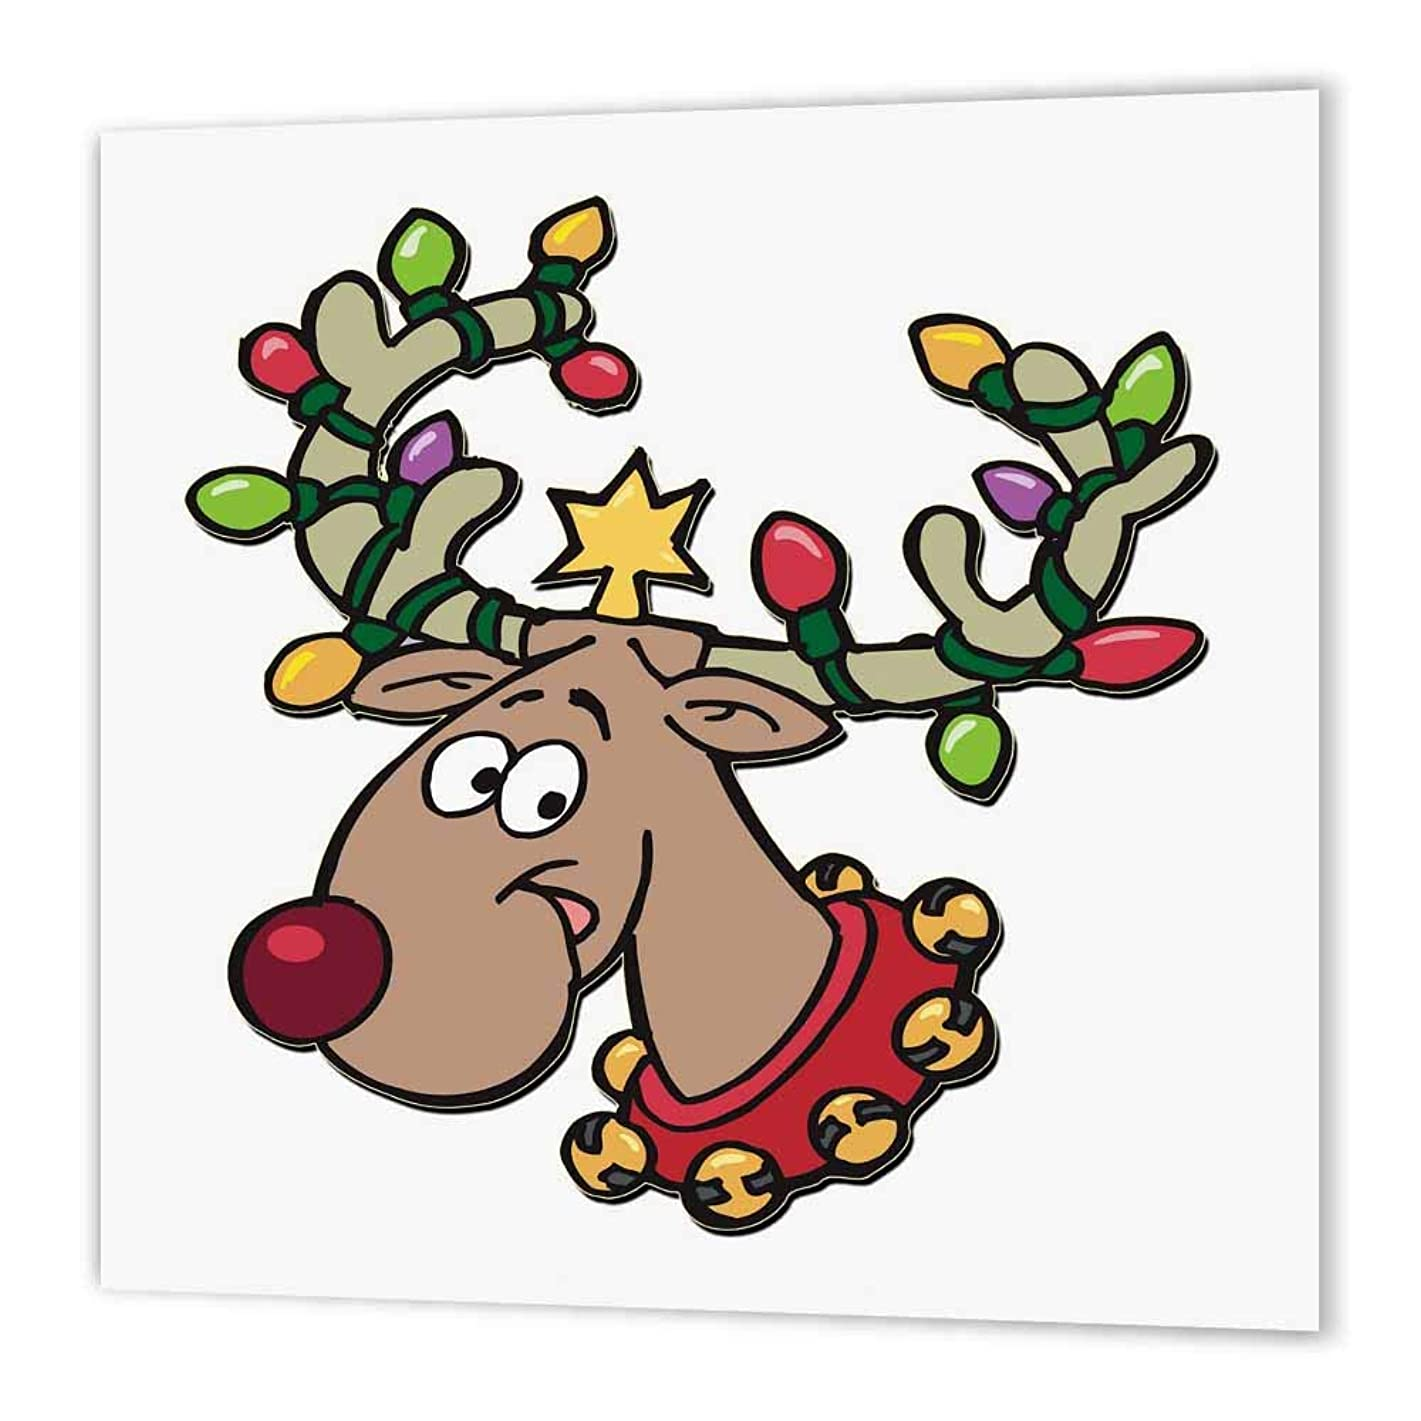 3dRose ht_160535_3 Reindeer with Holiday Lighted Antlers-Iron on Heat Transfer Paper for White Material, 10 by 10-Inch